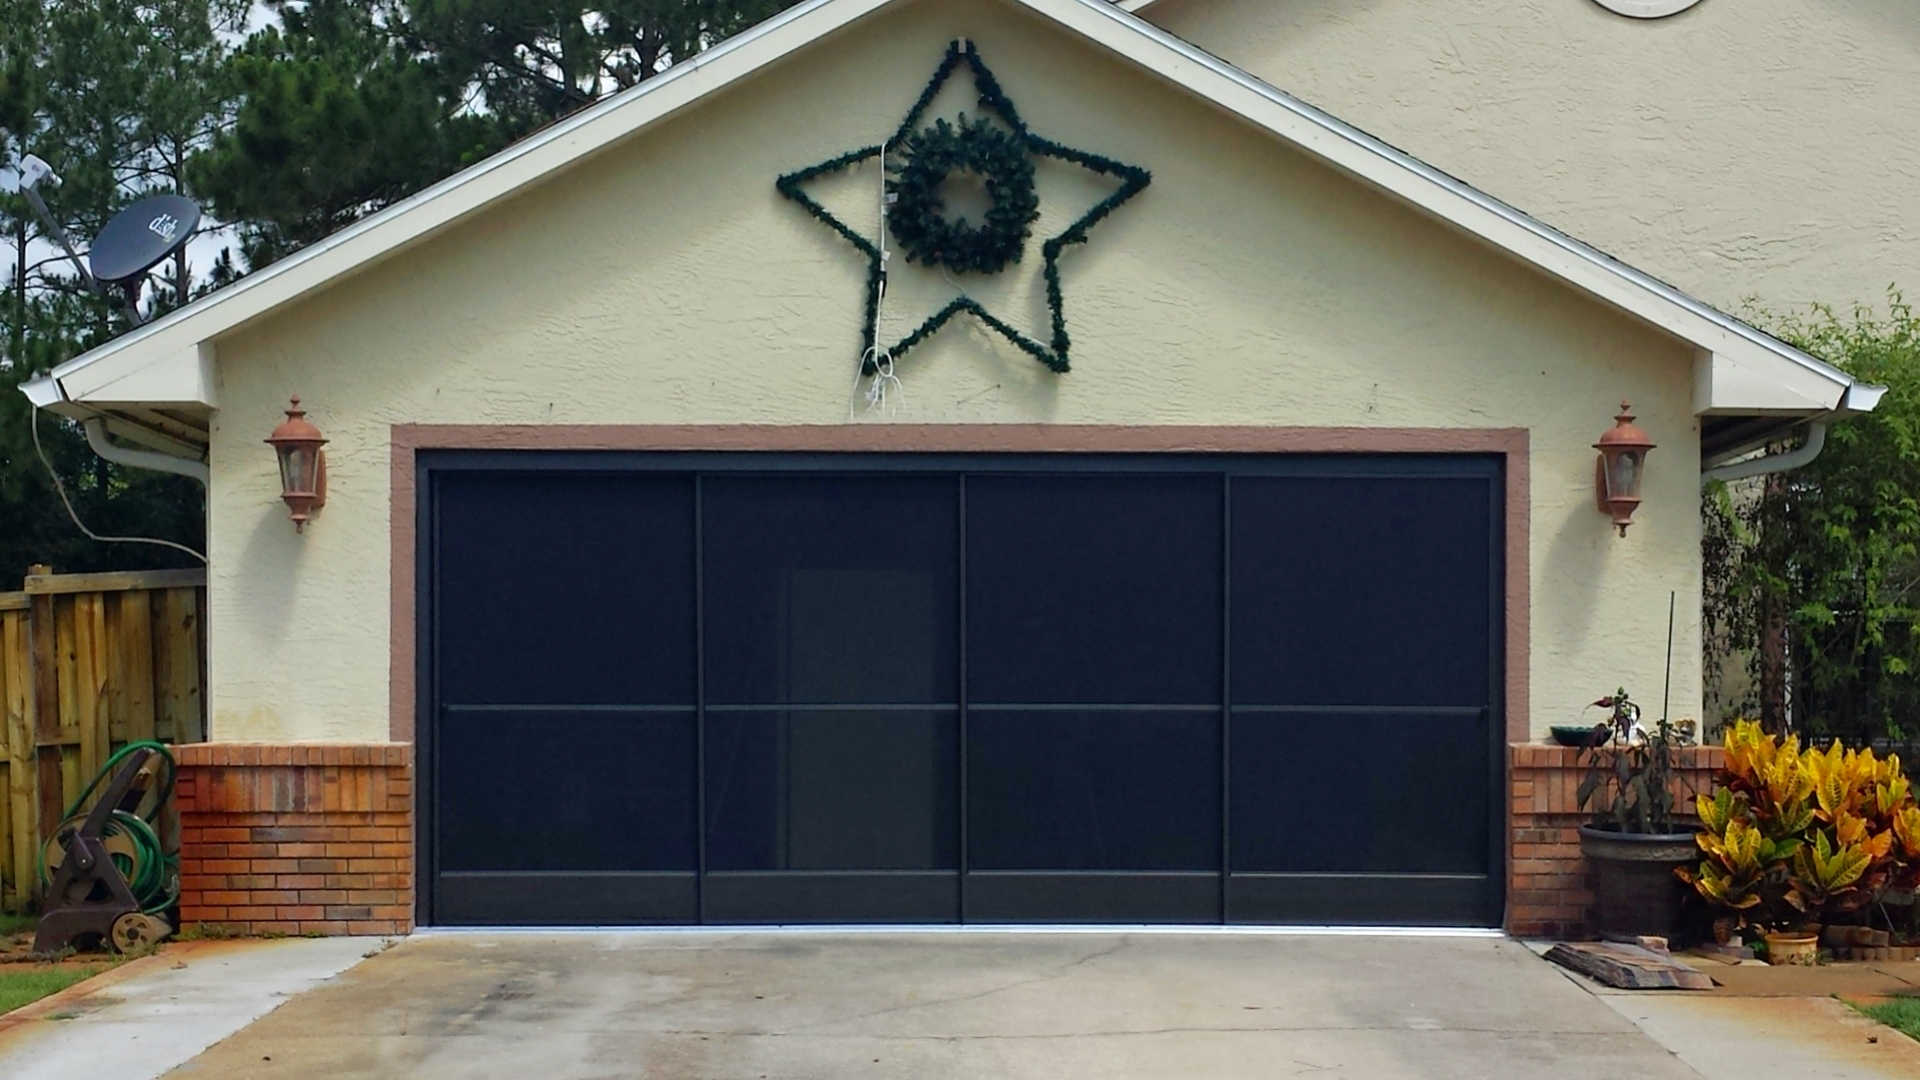 2-garage-screen-door-palm-coast.jpg